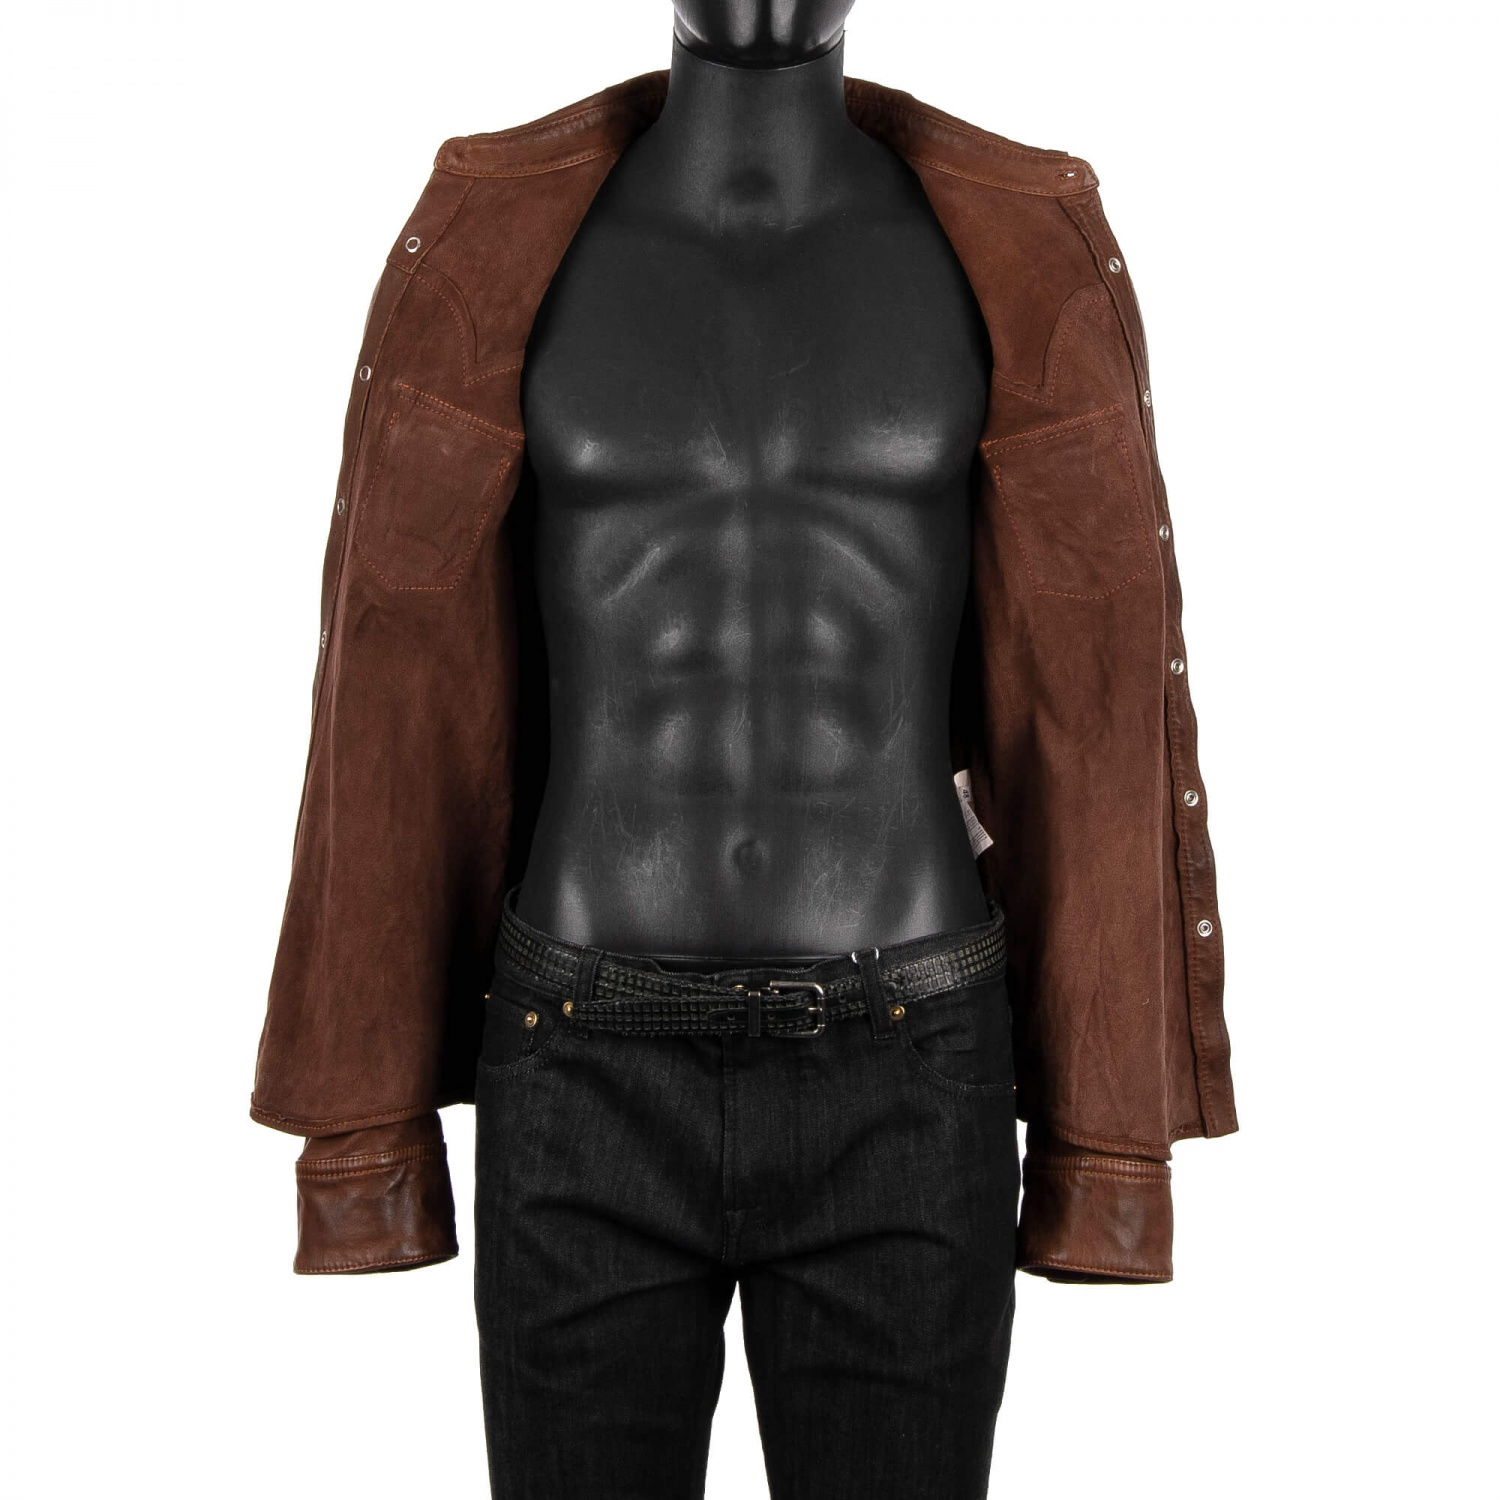 DOLCE /& GABBANA Sheep Leather Shirt Jacket with Pockets Brown S M 08893